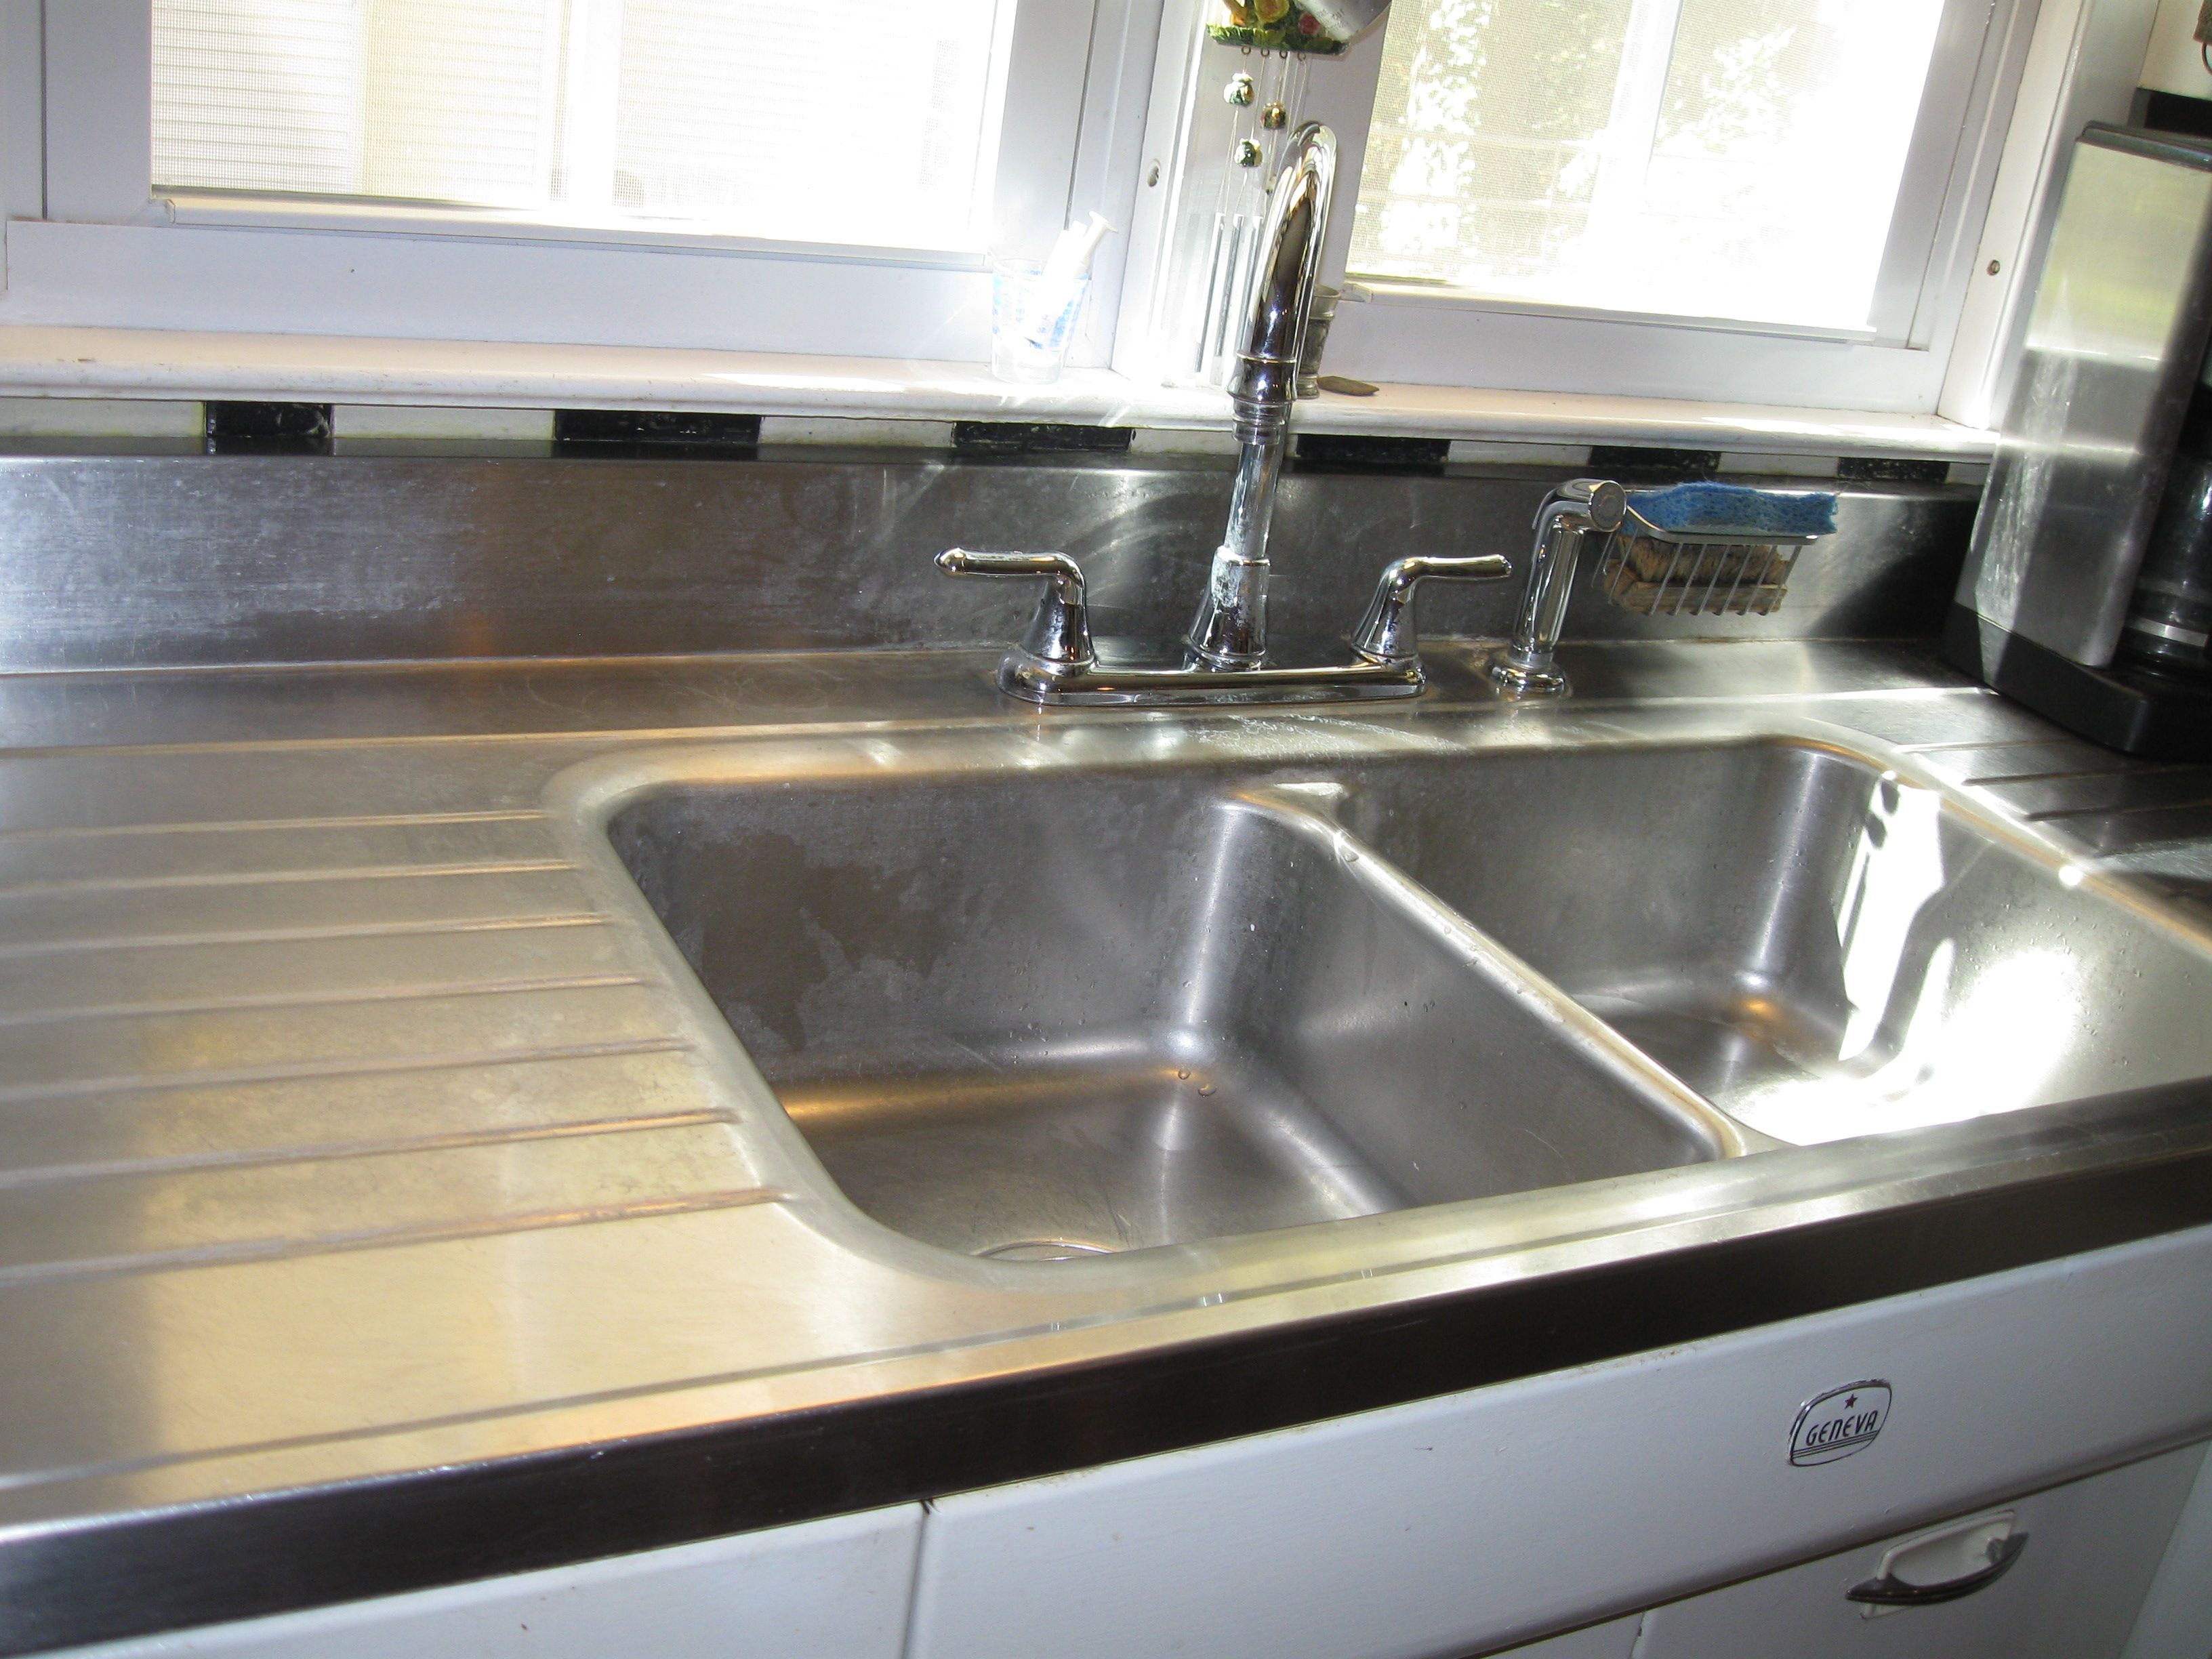 Geneva Sink Top Stainless Steel And Sink Base For Sale On Craigslist Asking 600 Sold Stainless Steel Sinks Sink Top Sink